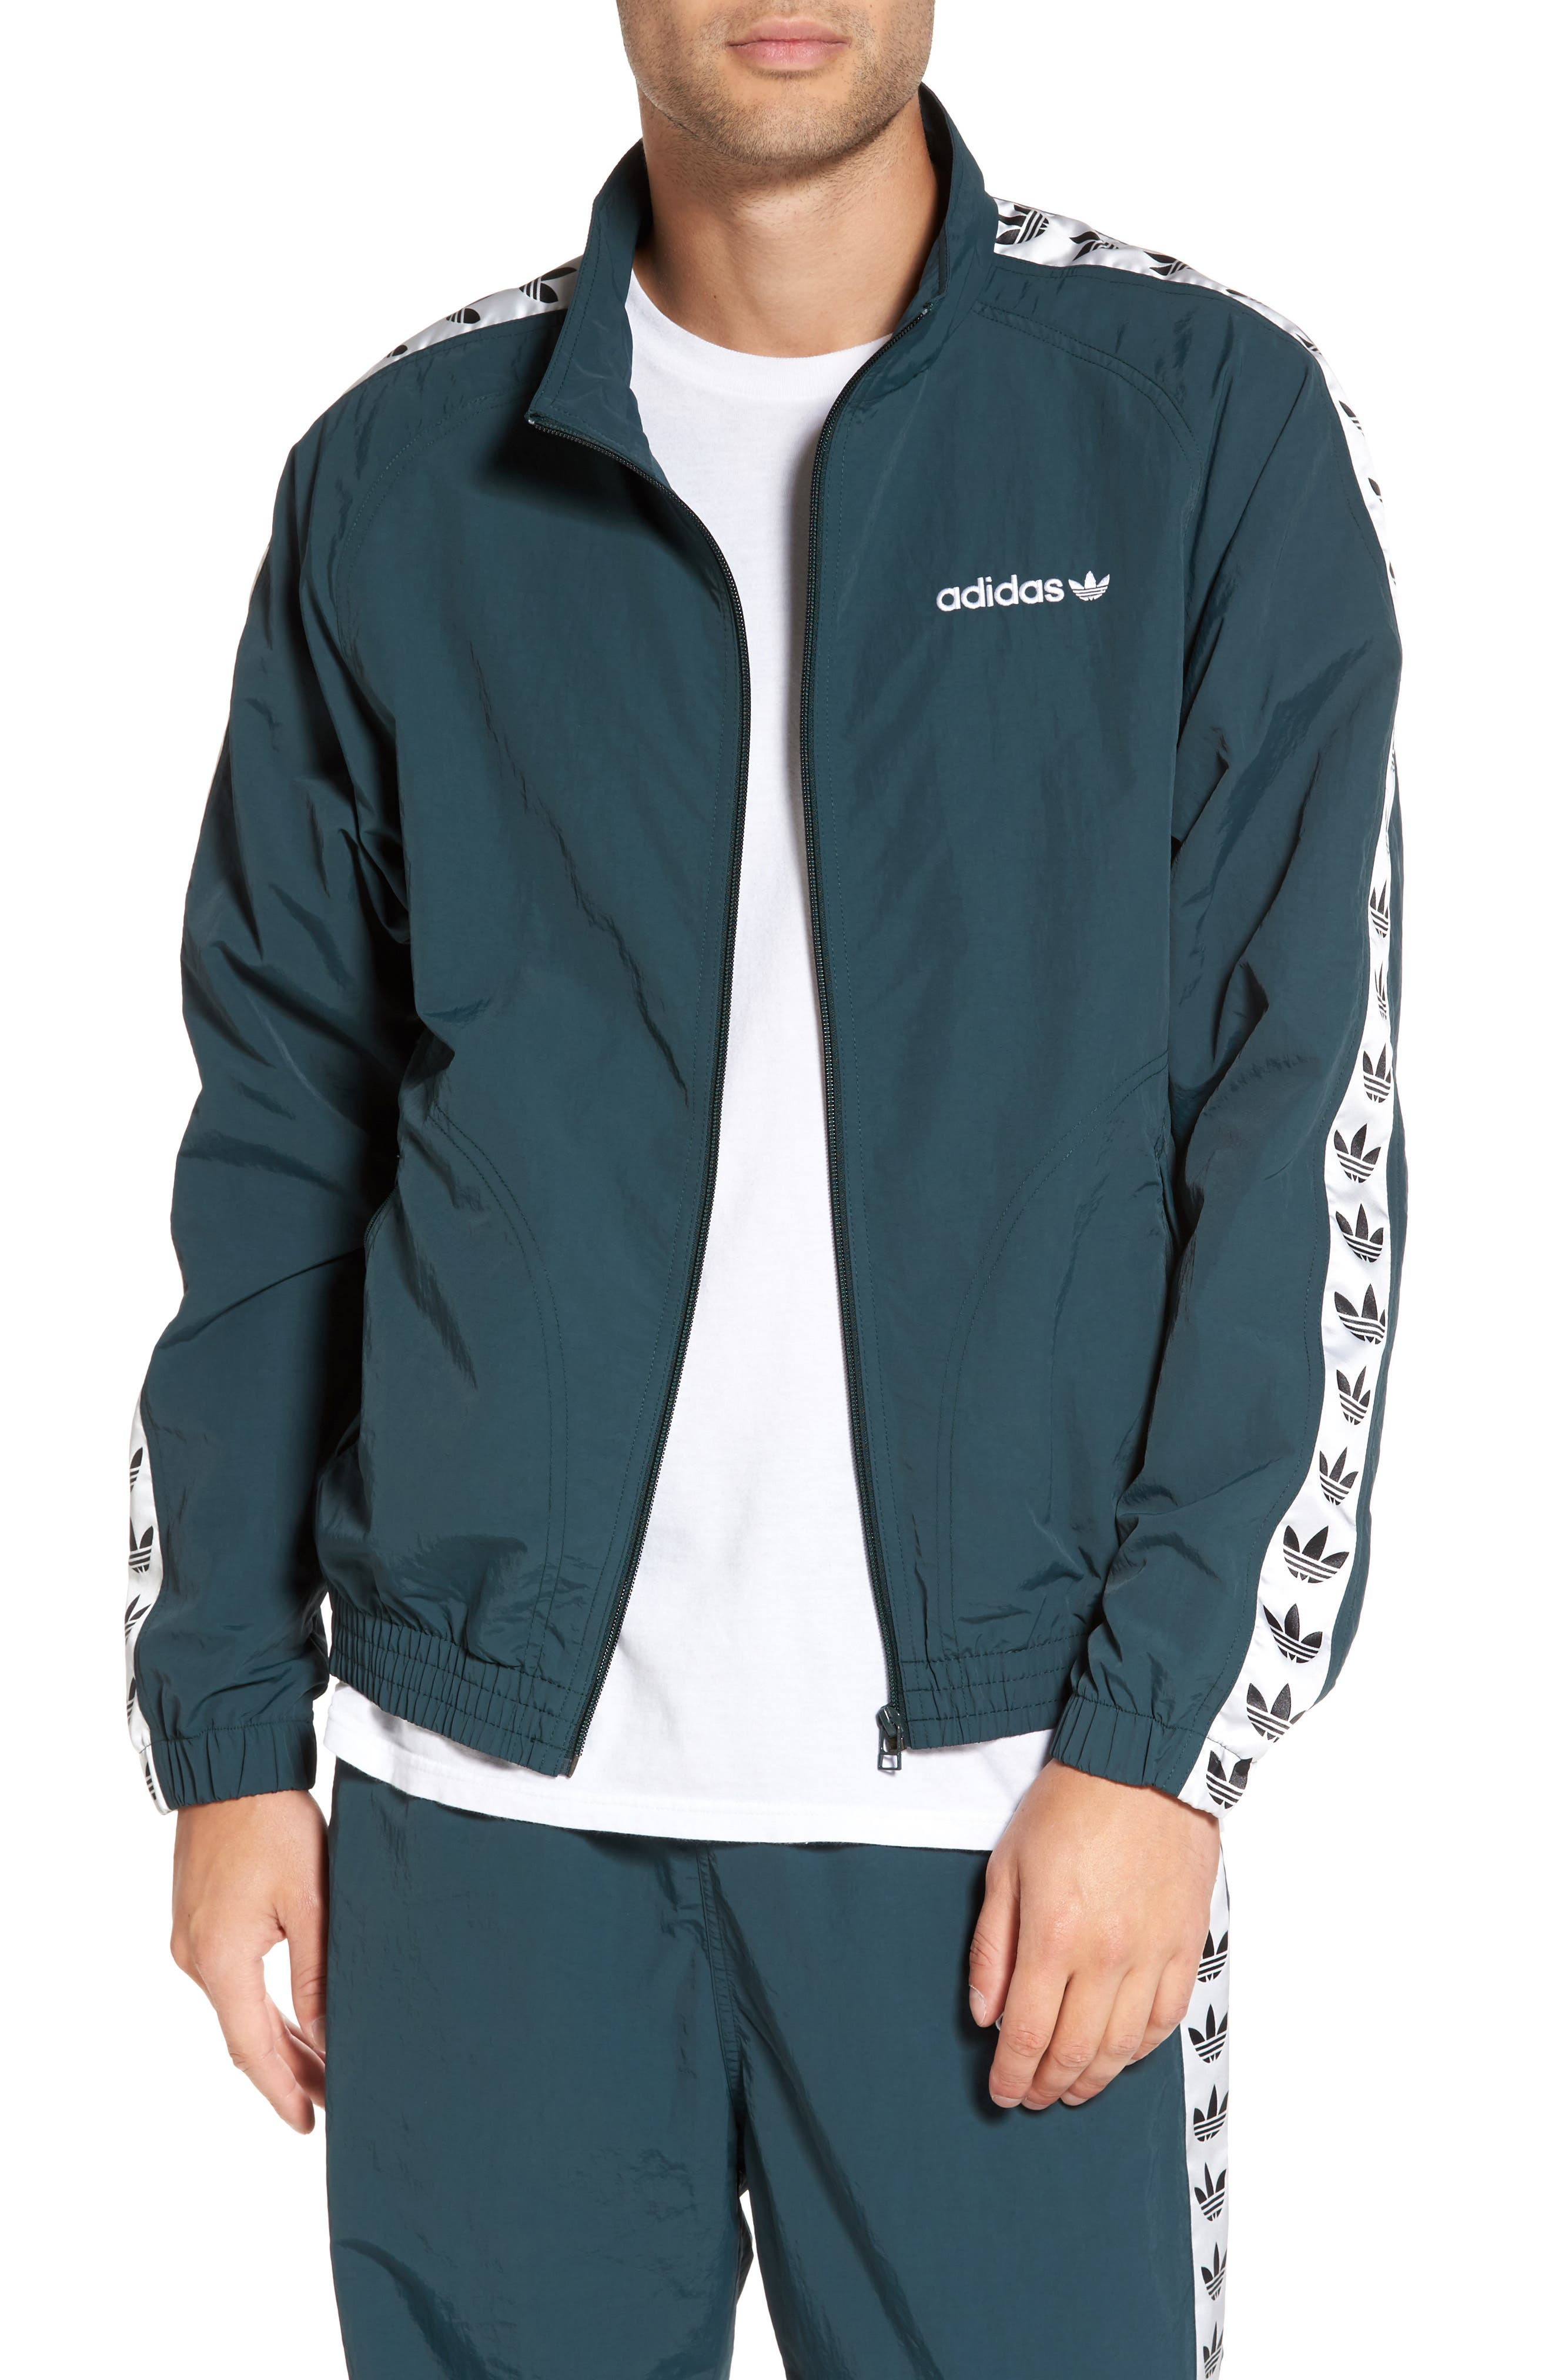 adidas Originals TNT Trefoil Windbreaker